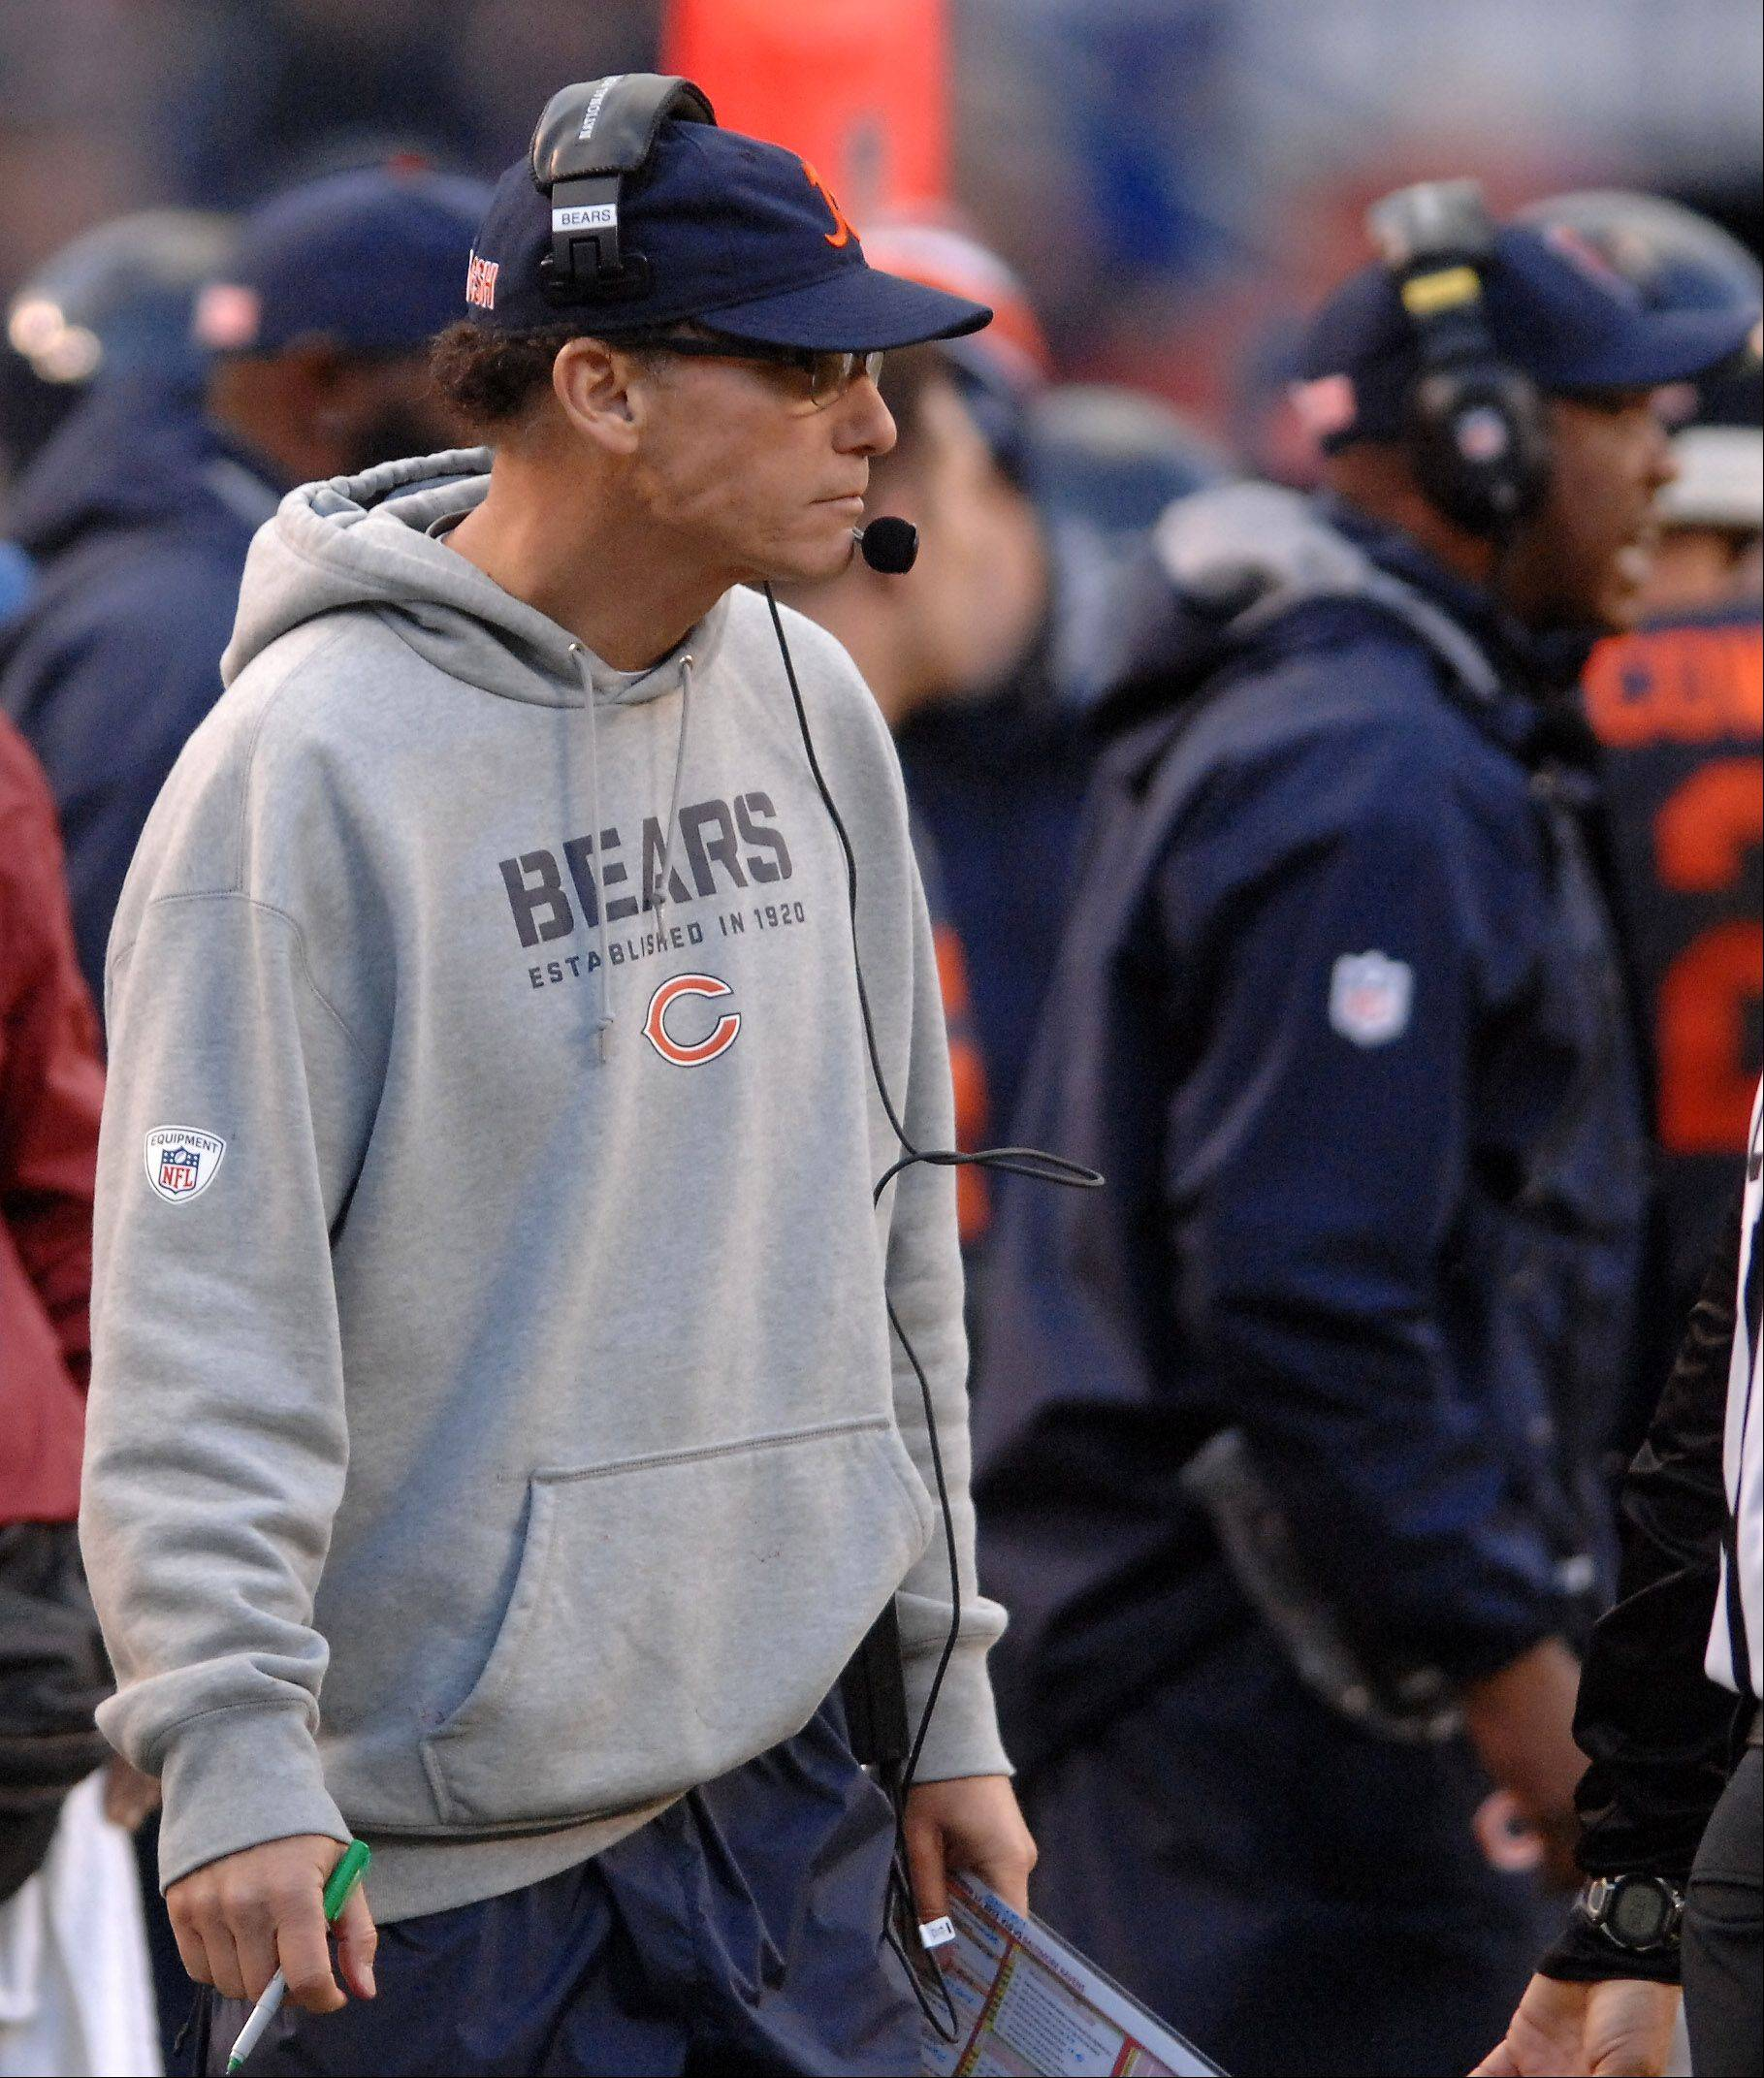 Chicago Bears head coach Marc Trestman watches the second quarter action during Sunday's game in Chicago.